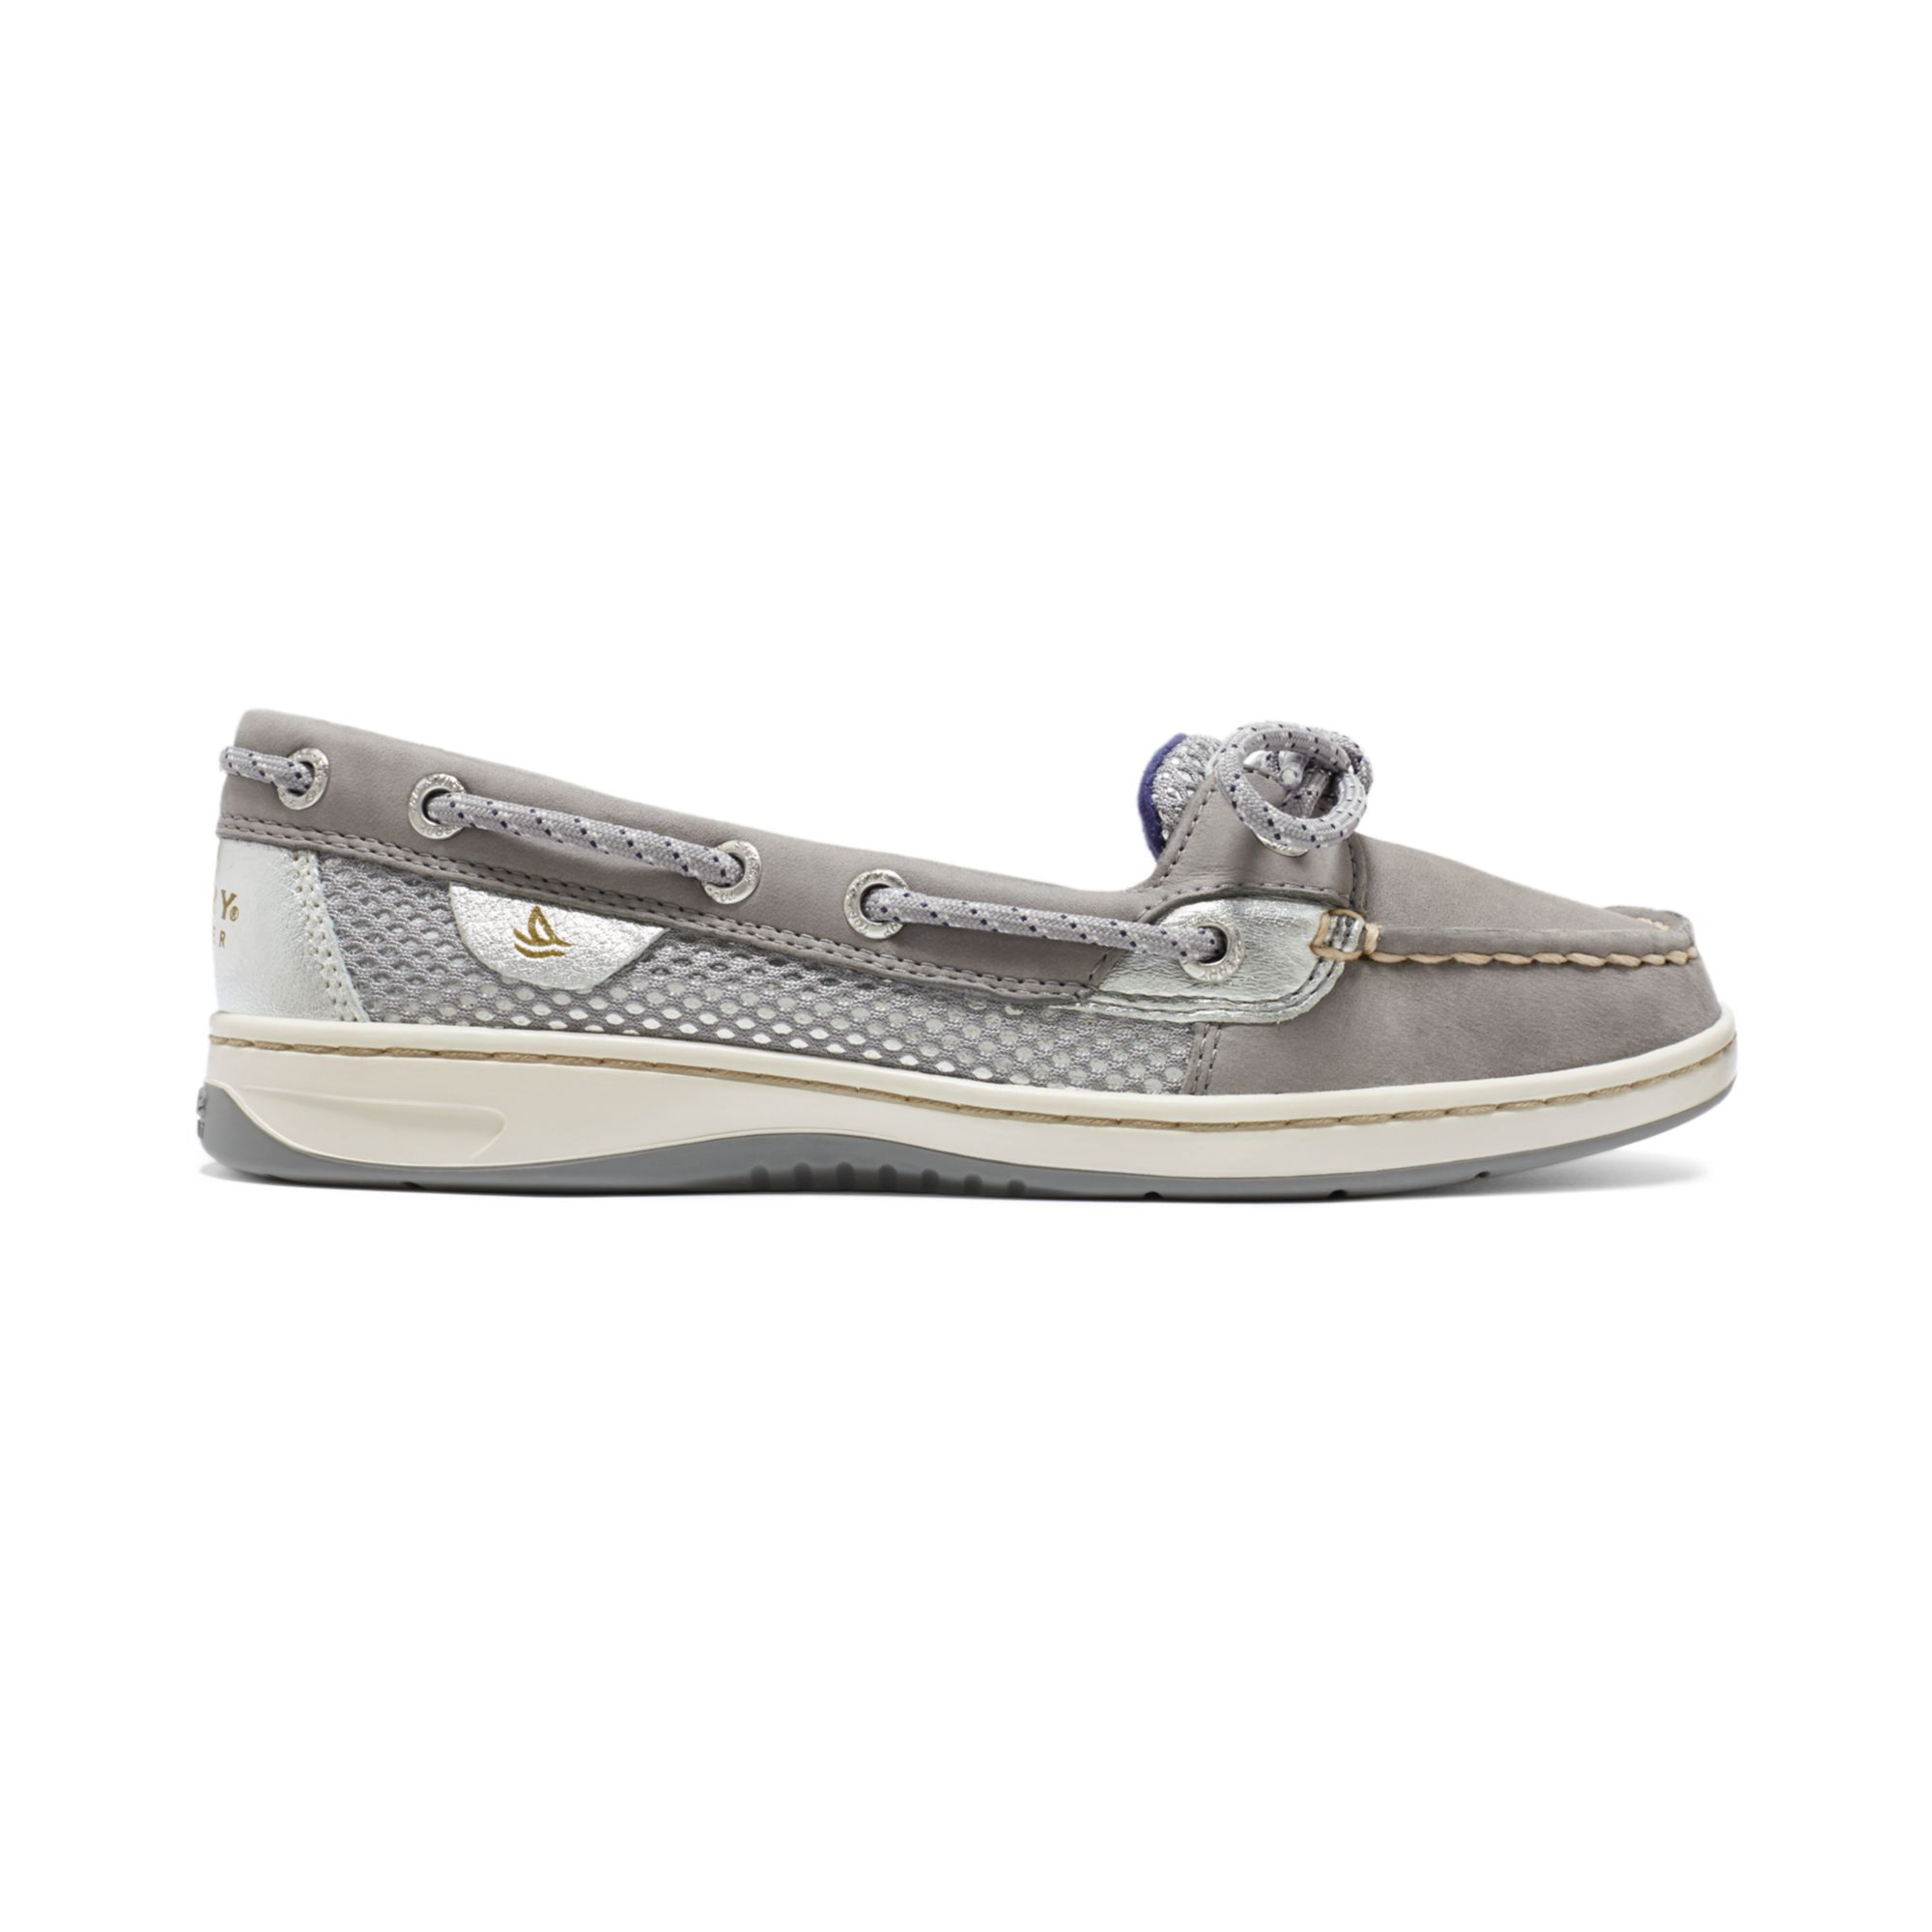 Sperry Top Sider Silver Boat Shoes